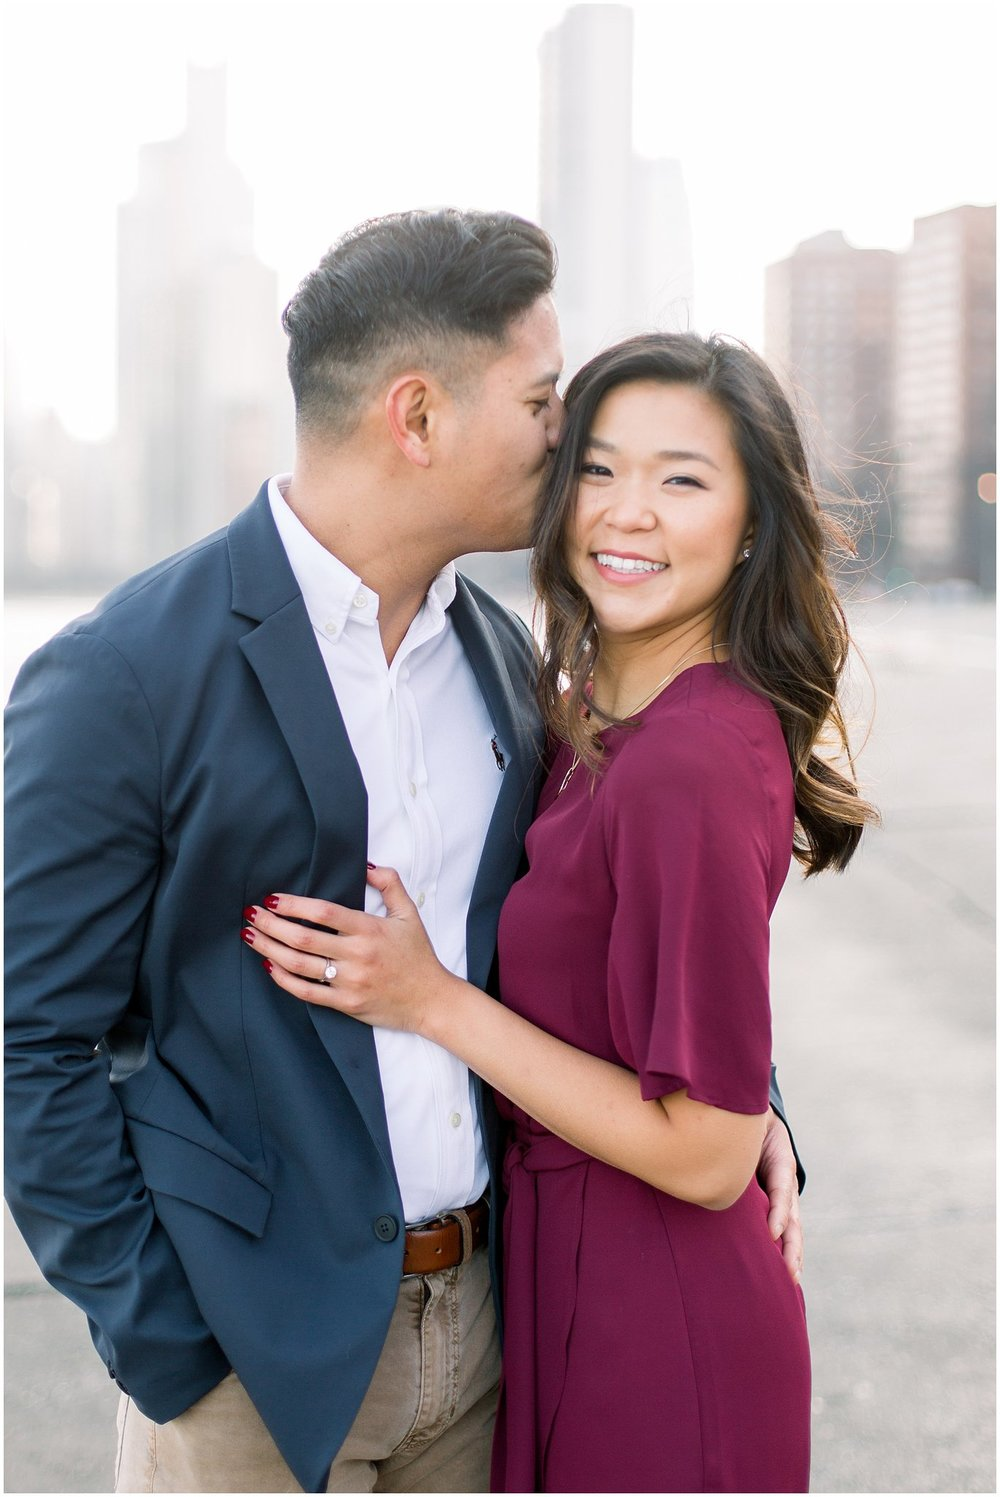 winter-downtown-engagement-session_0026.jpg